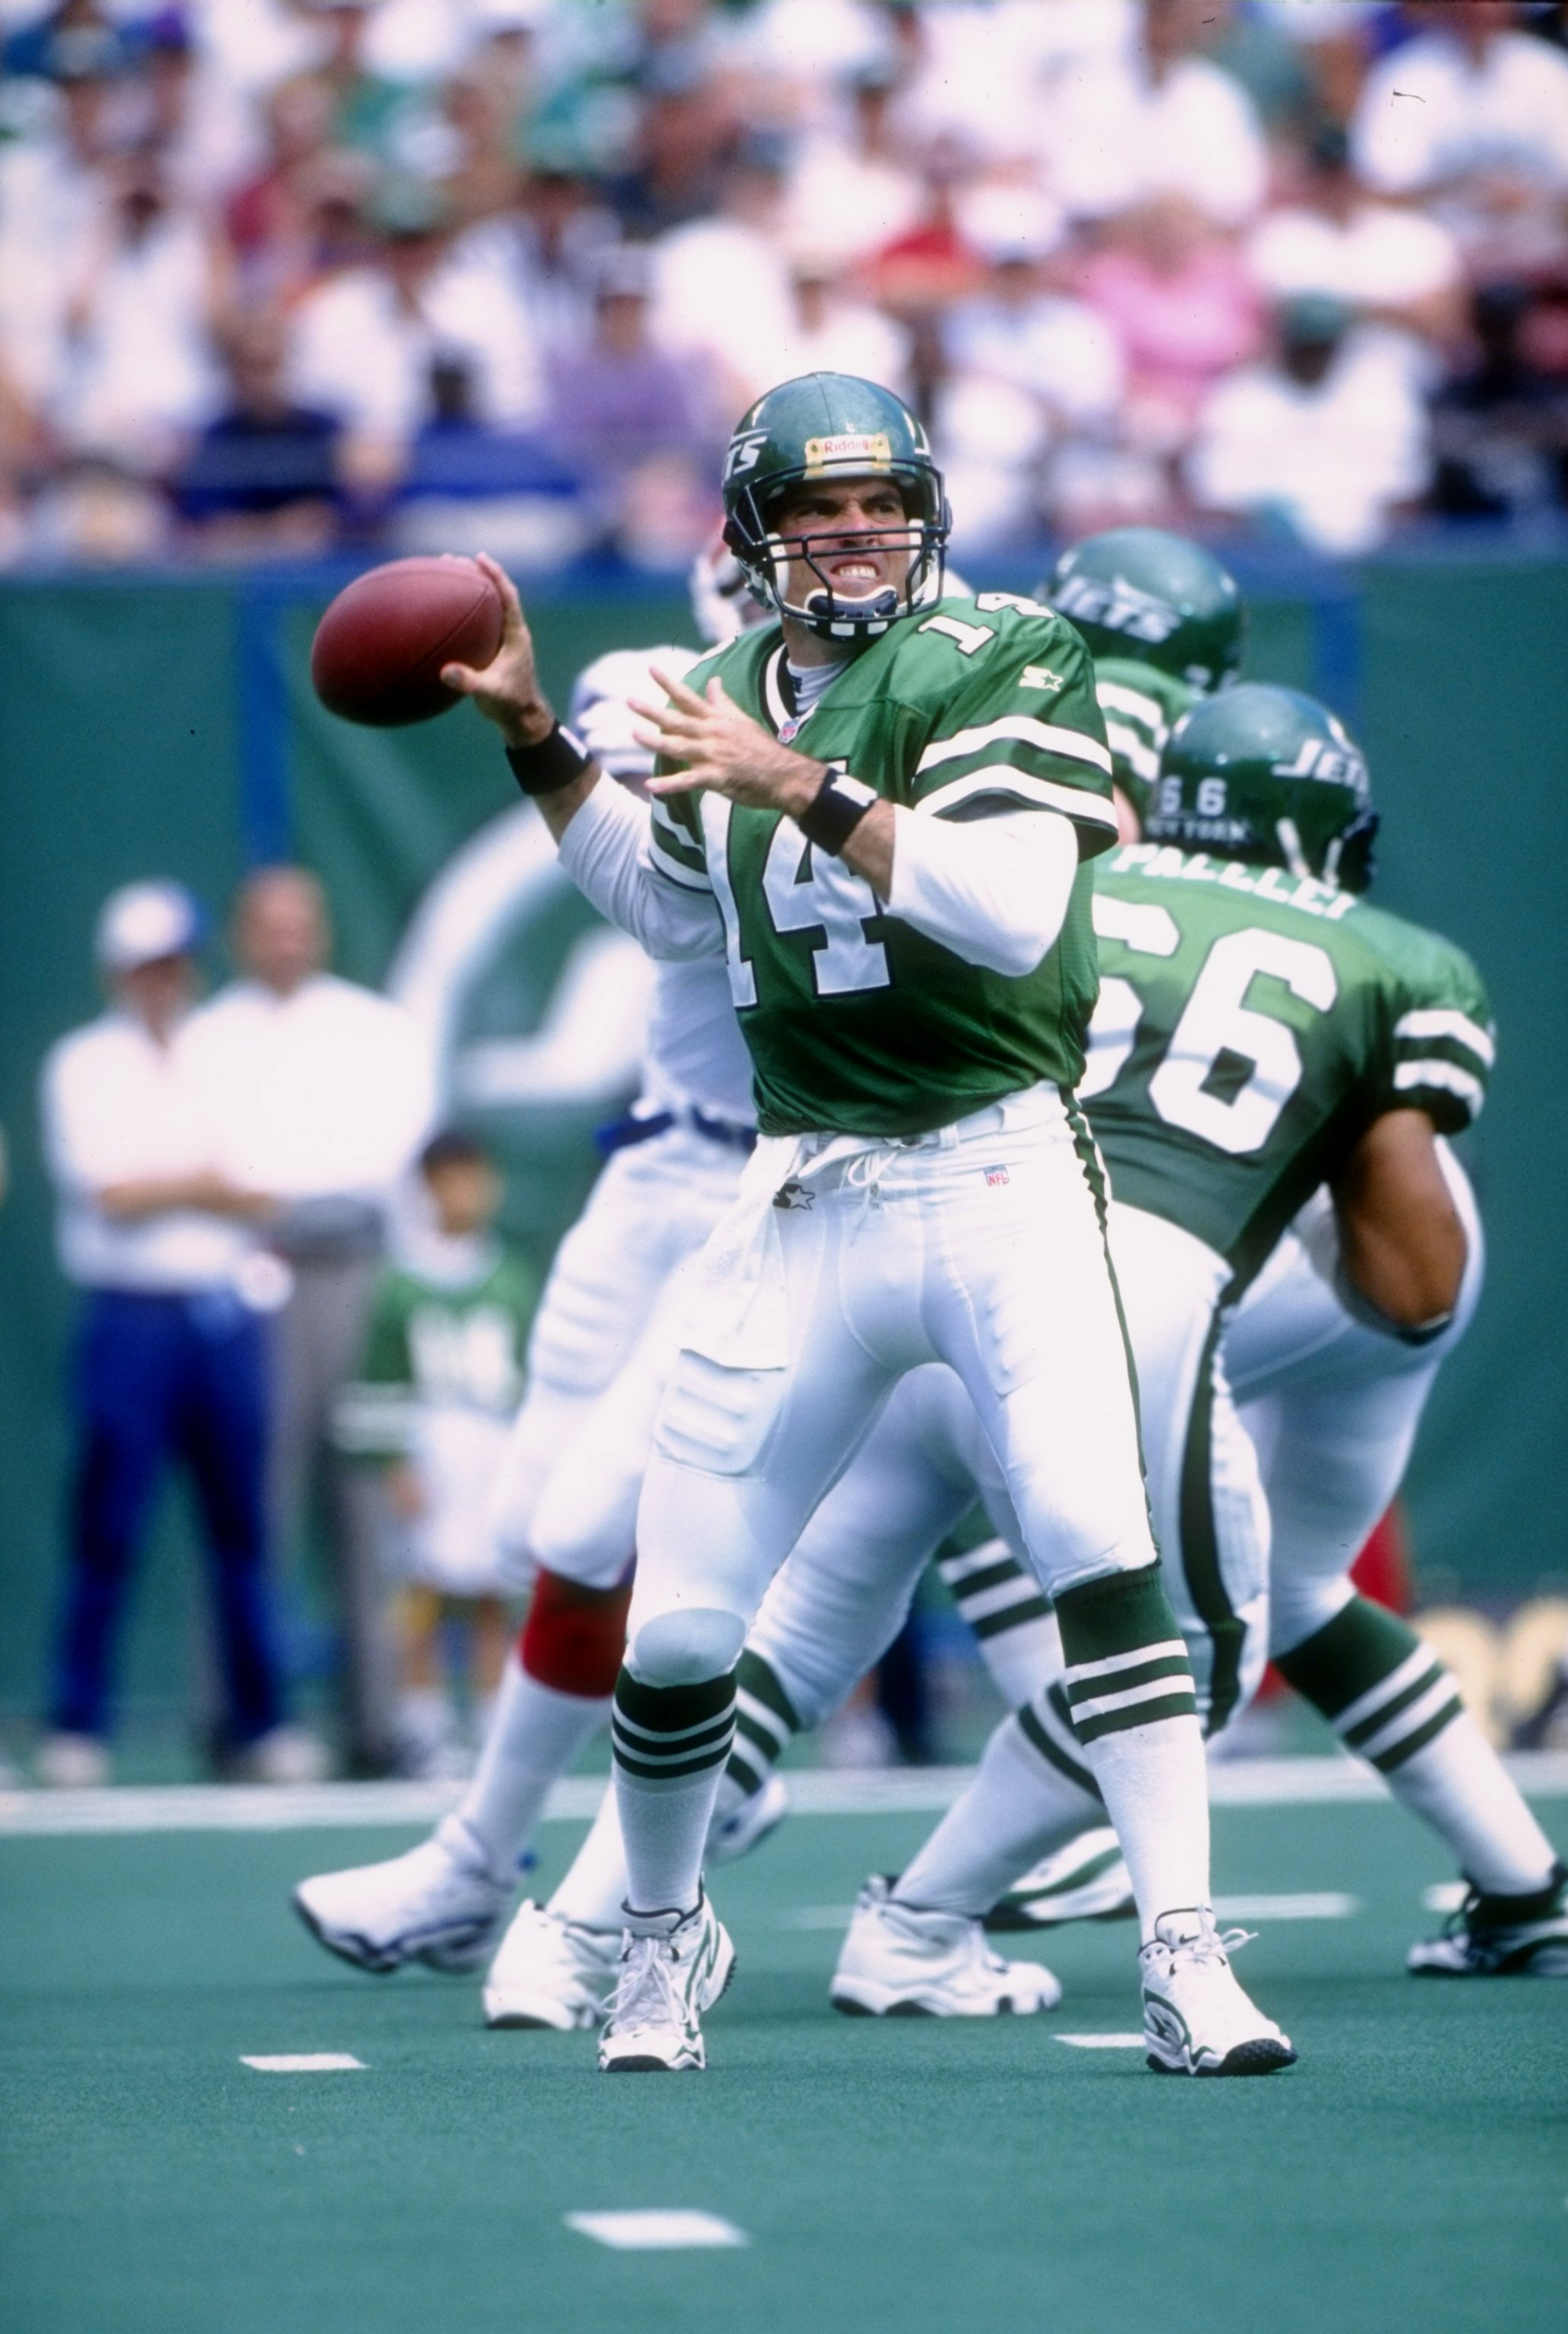 7 Sep 1997:  Quarterback Neil O''Donnell of the New York Jets begins to throw during the Jets 28-22 loss to the Buffalo Bills at Giants Stadium in East Rutherford, New Jersey. Mandatory Credit: Tomasso Derosa  /Allsport